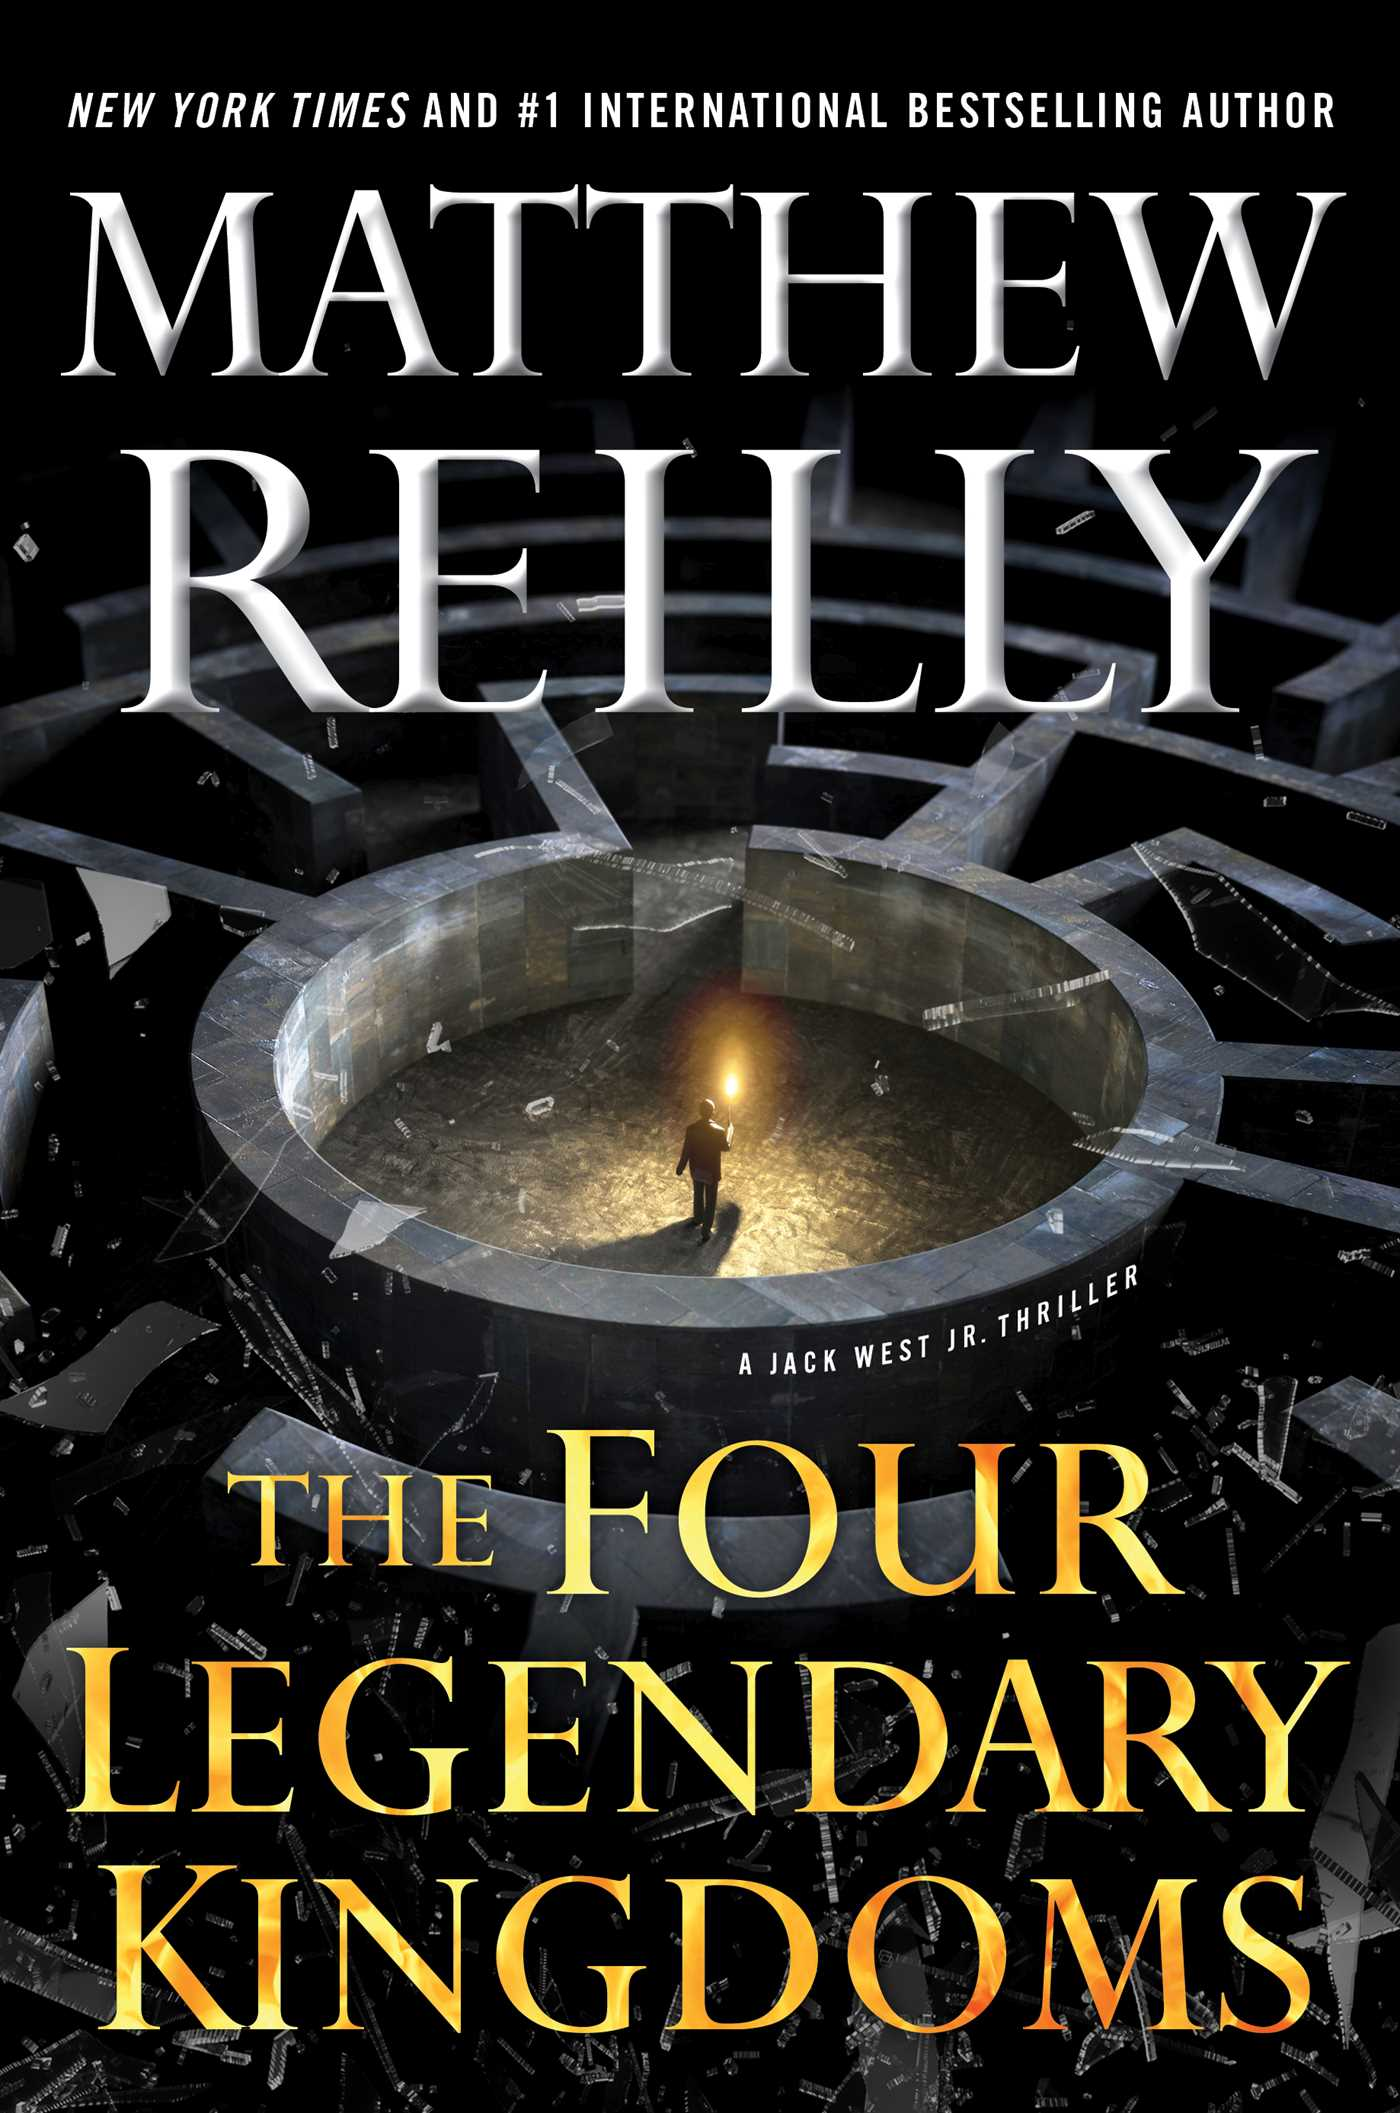 The four legendary kingdoms 9781501167157 hr